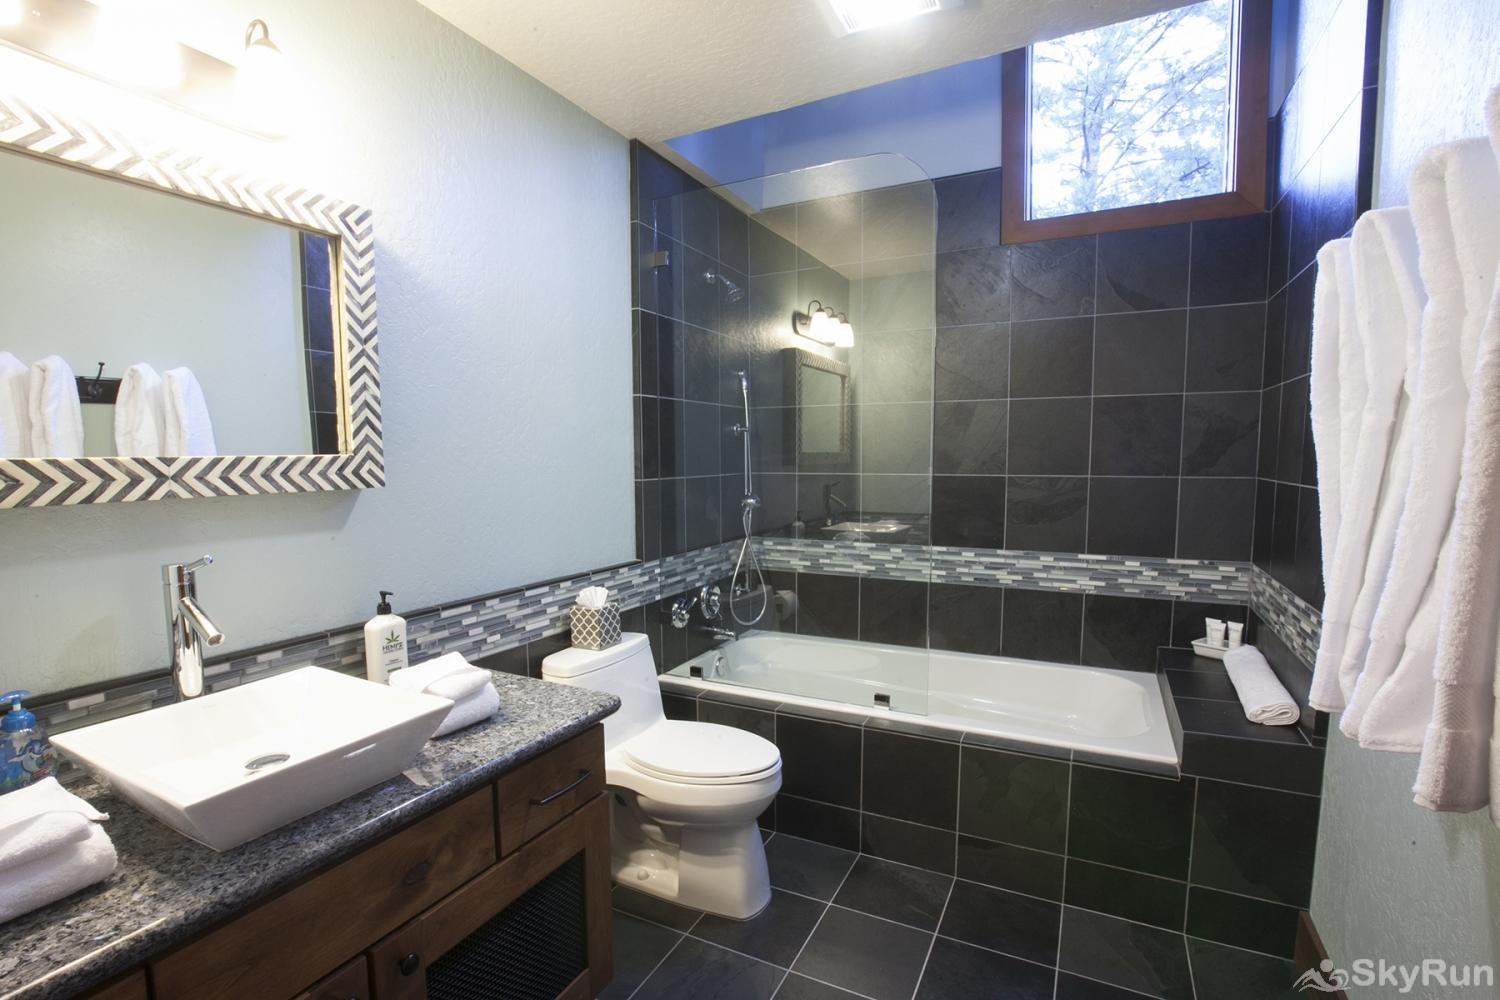 Northstar Luxury Lodgepole Retreat Guest Full Bathroom (upper level)